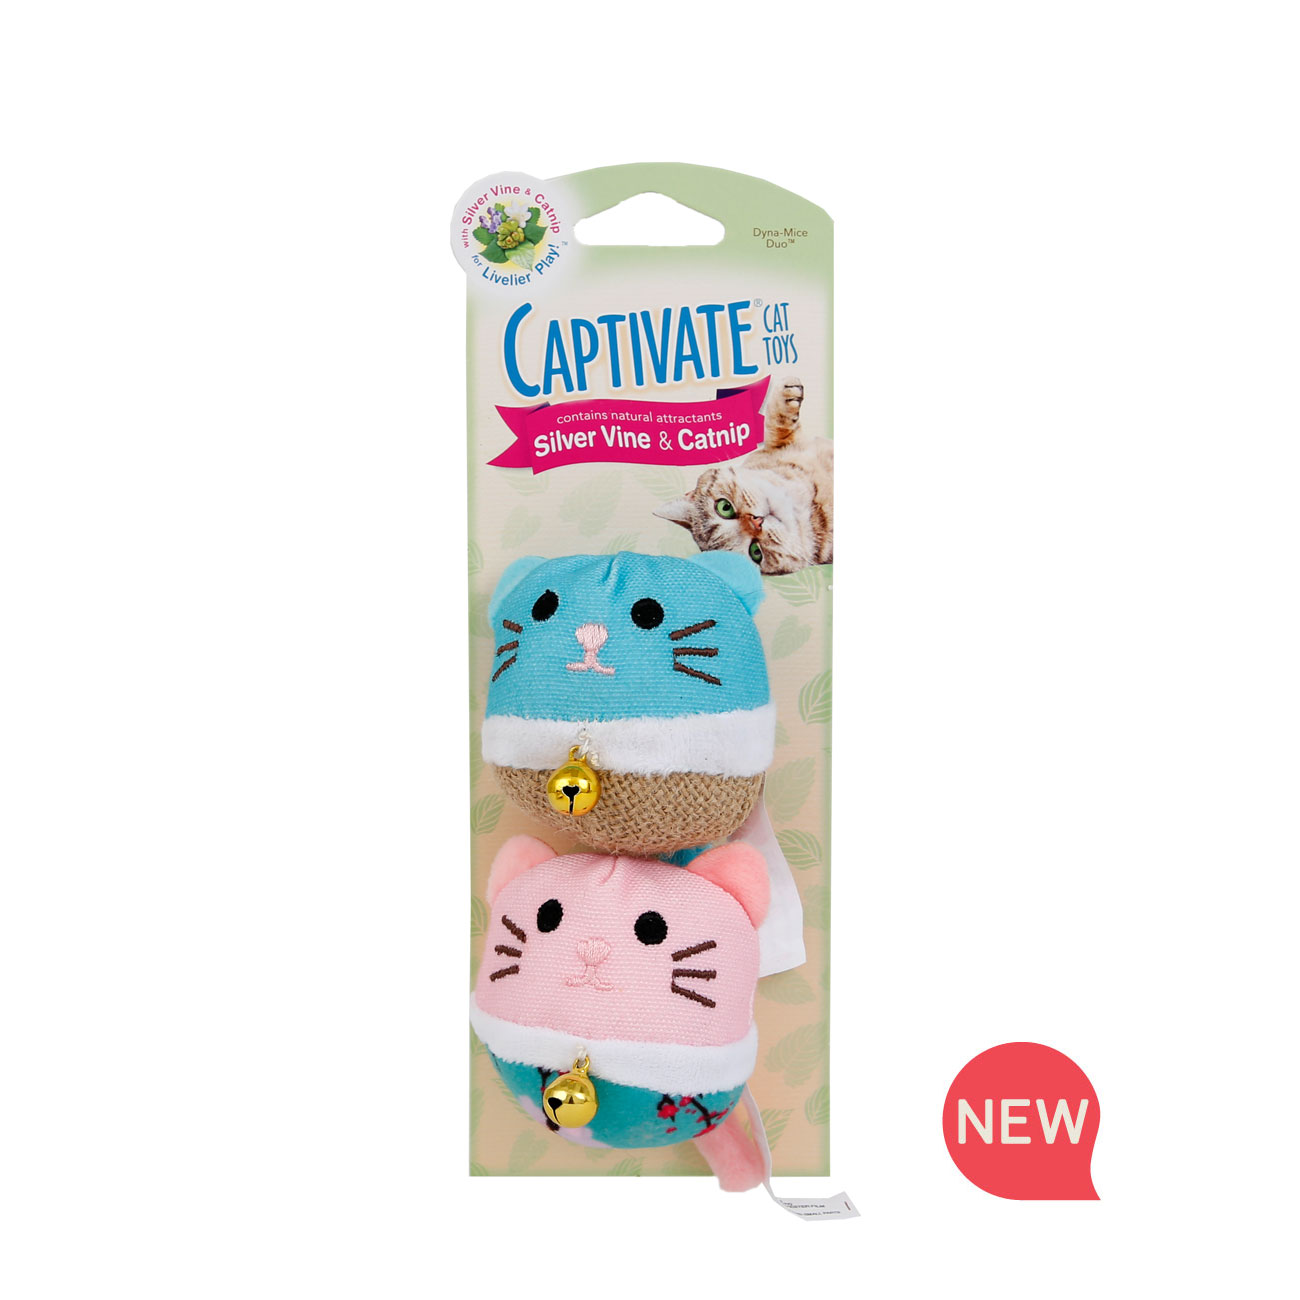 New! Hartz captivate cat toy with silver vine and catnip. Front of package. Hartz SKU# 3270011258